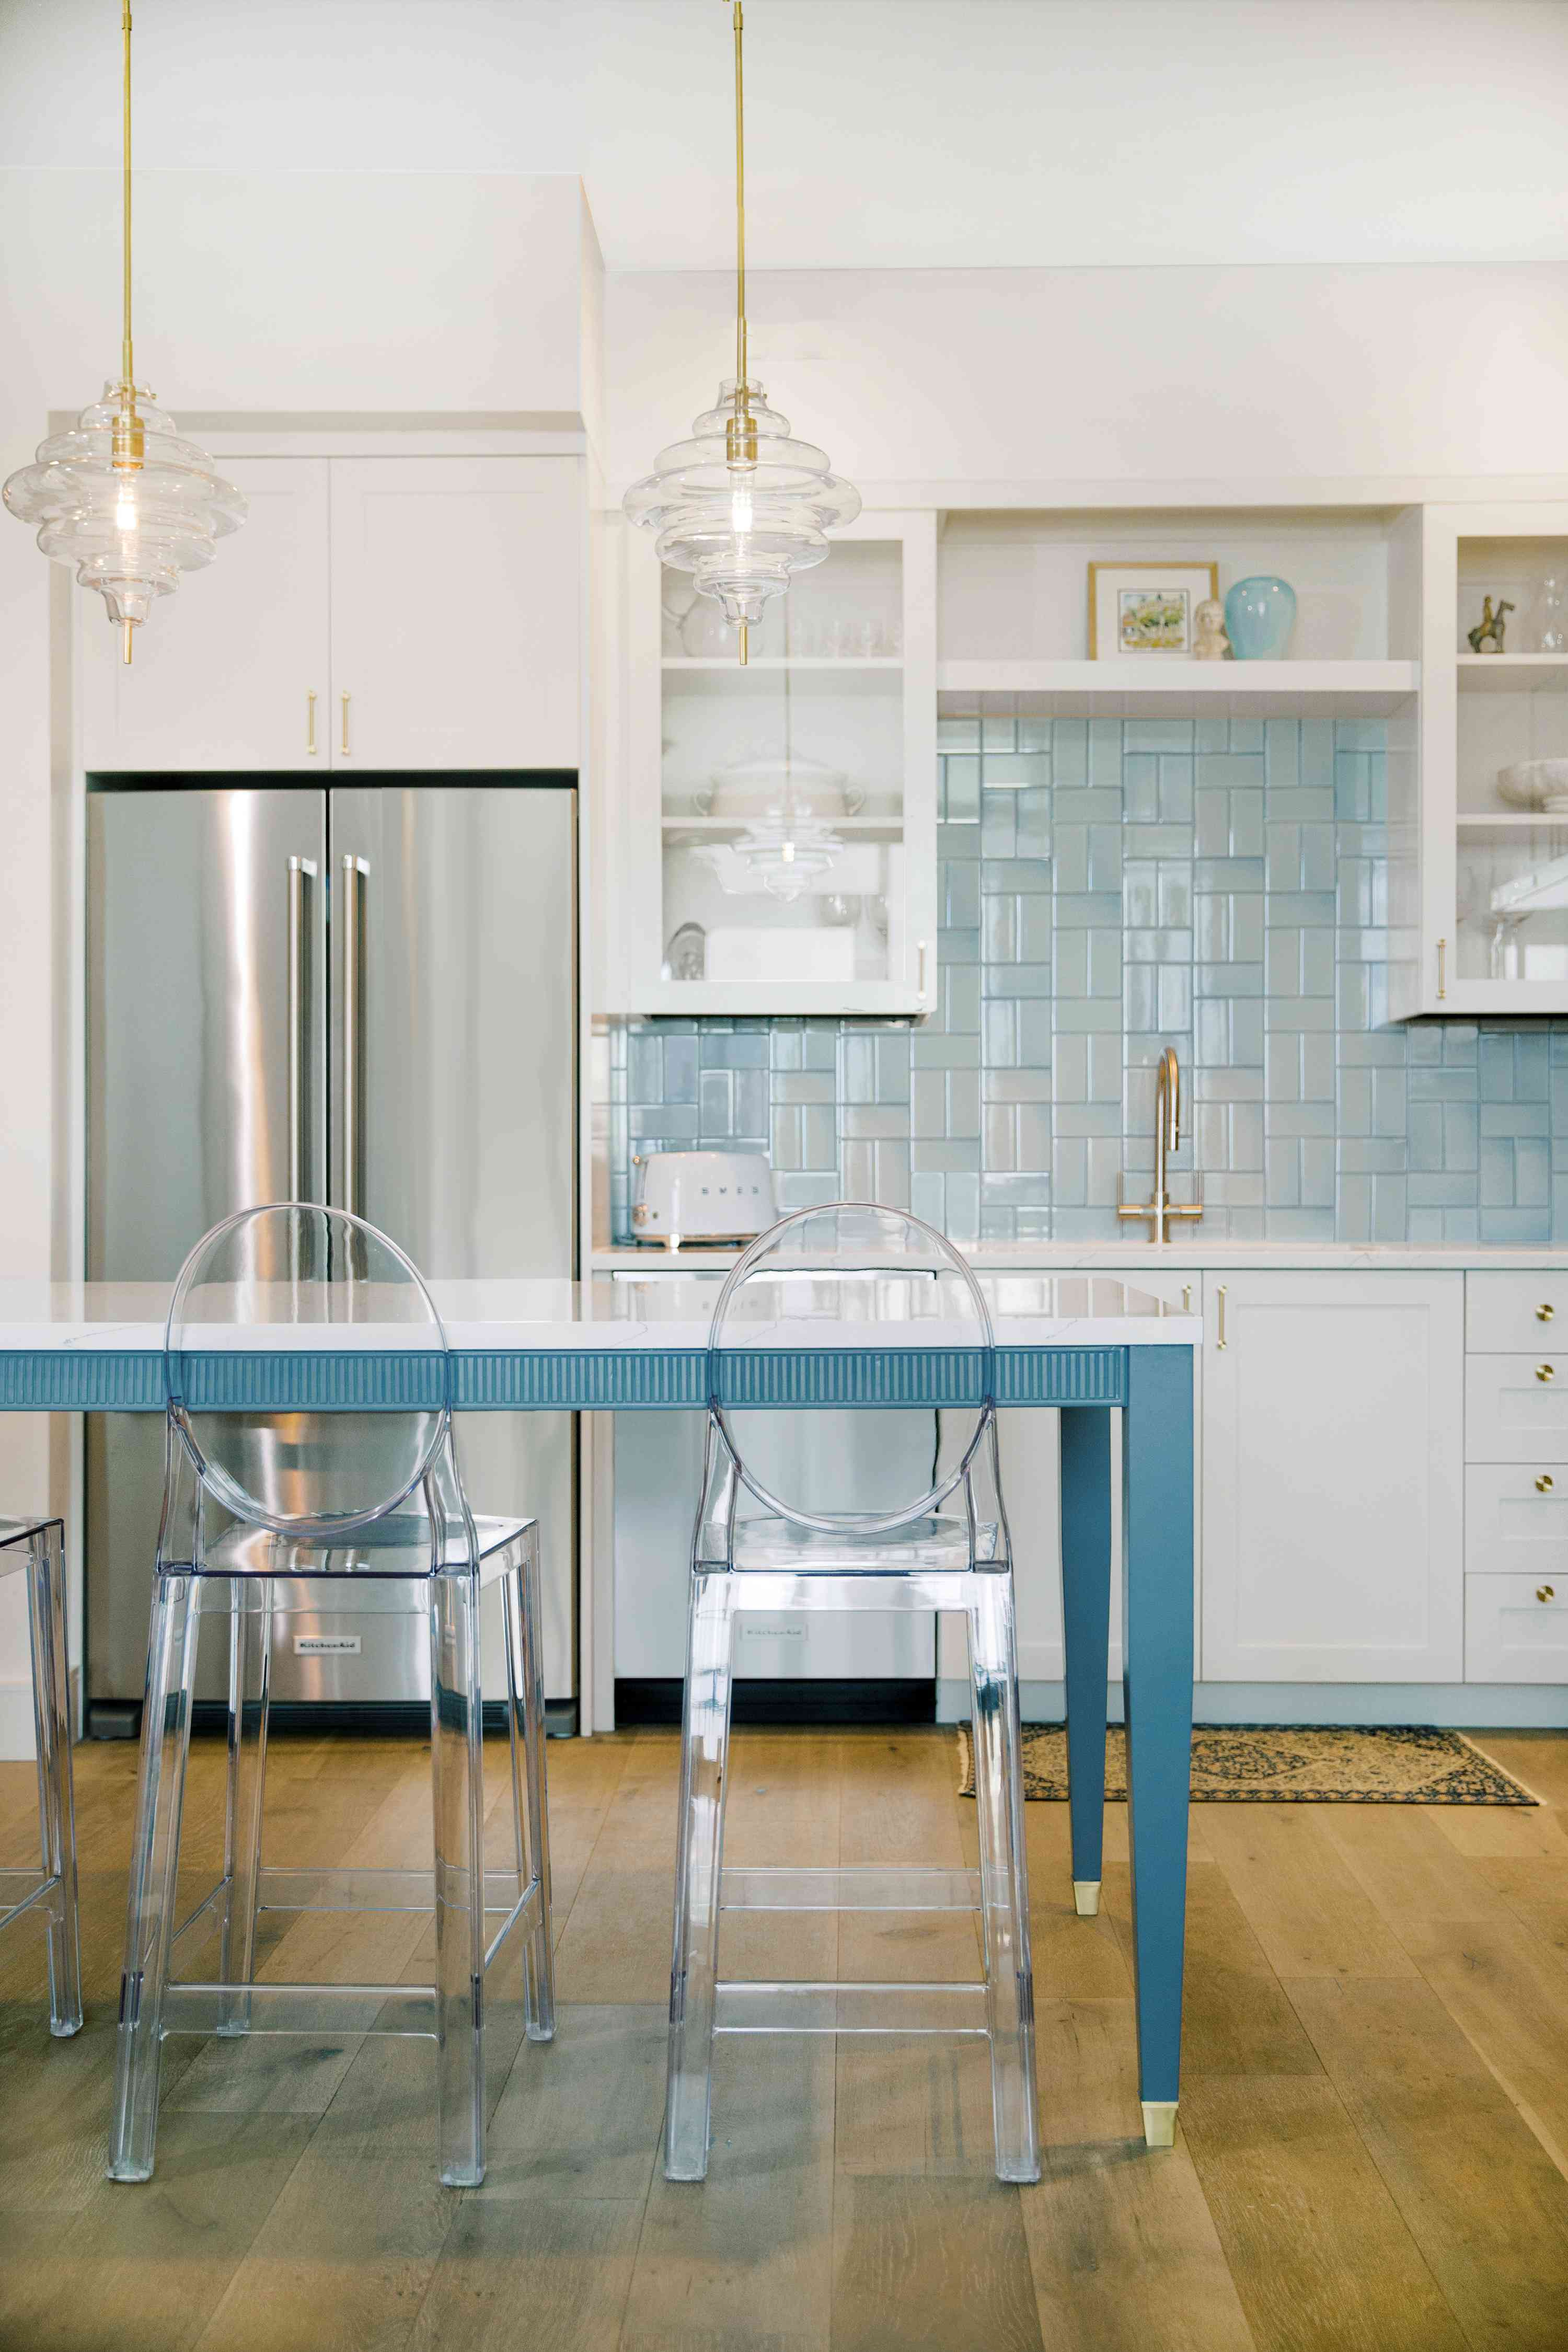 Bright white kitchen with clear barstools.